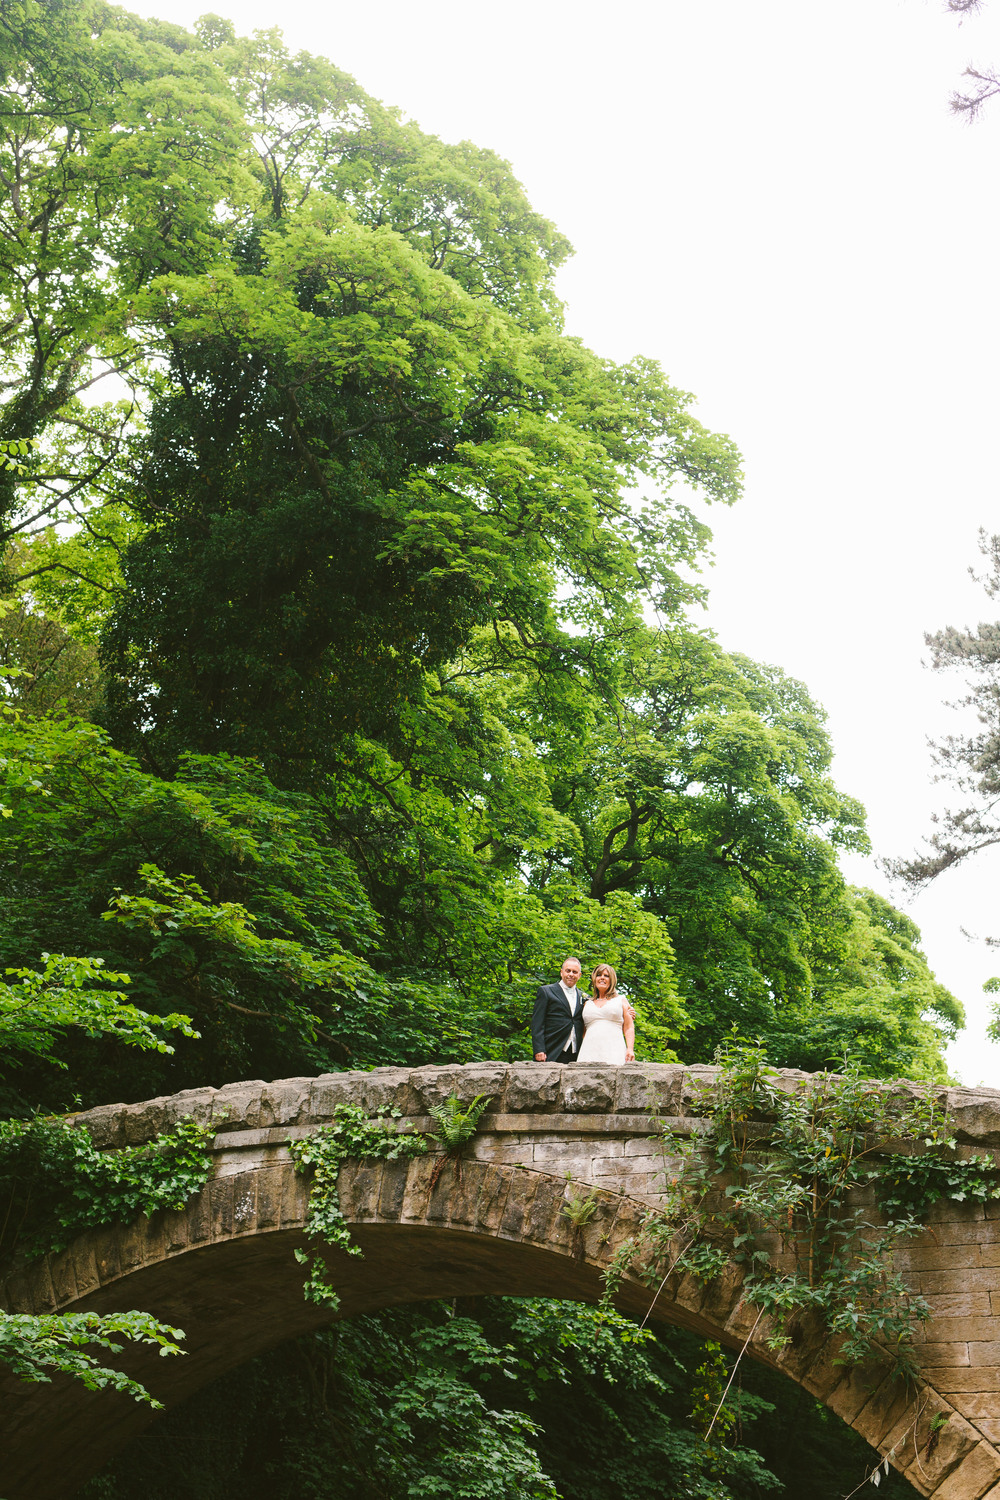 Newcastle Wedding Venue // The Caledonian Hotel // Jesmond Dene